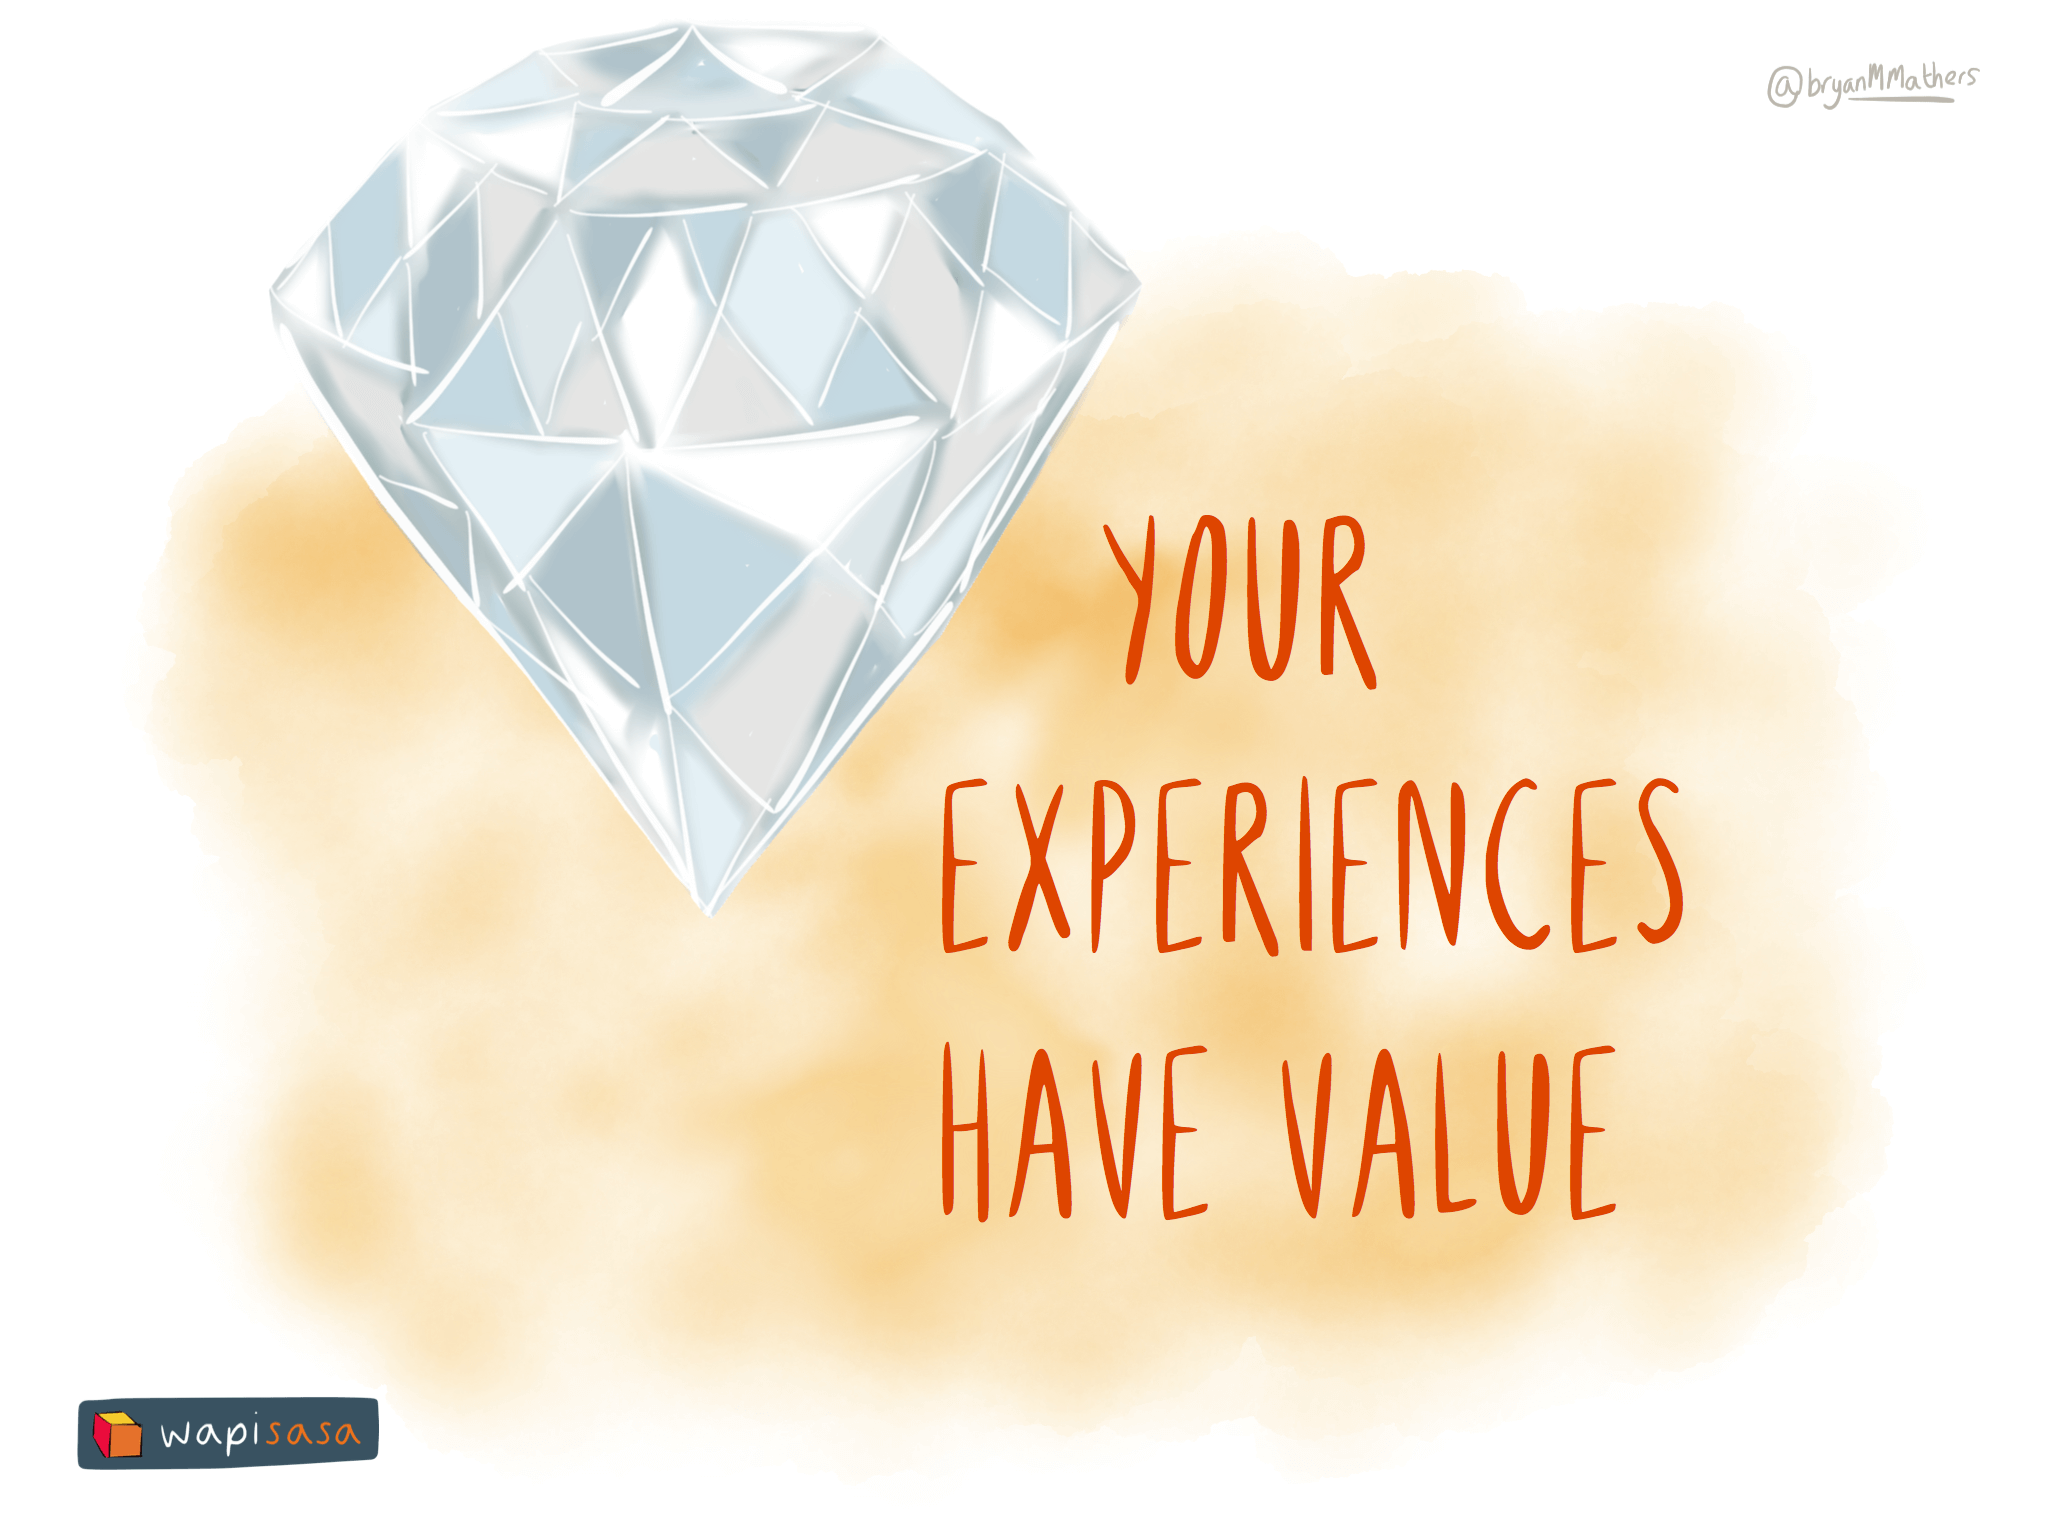 Your experiences have value